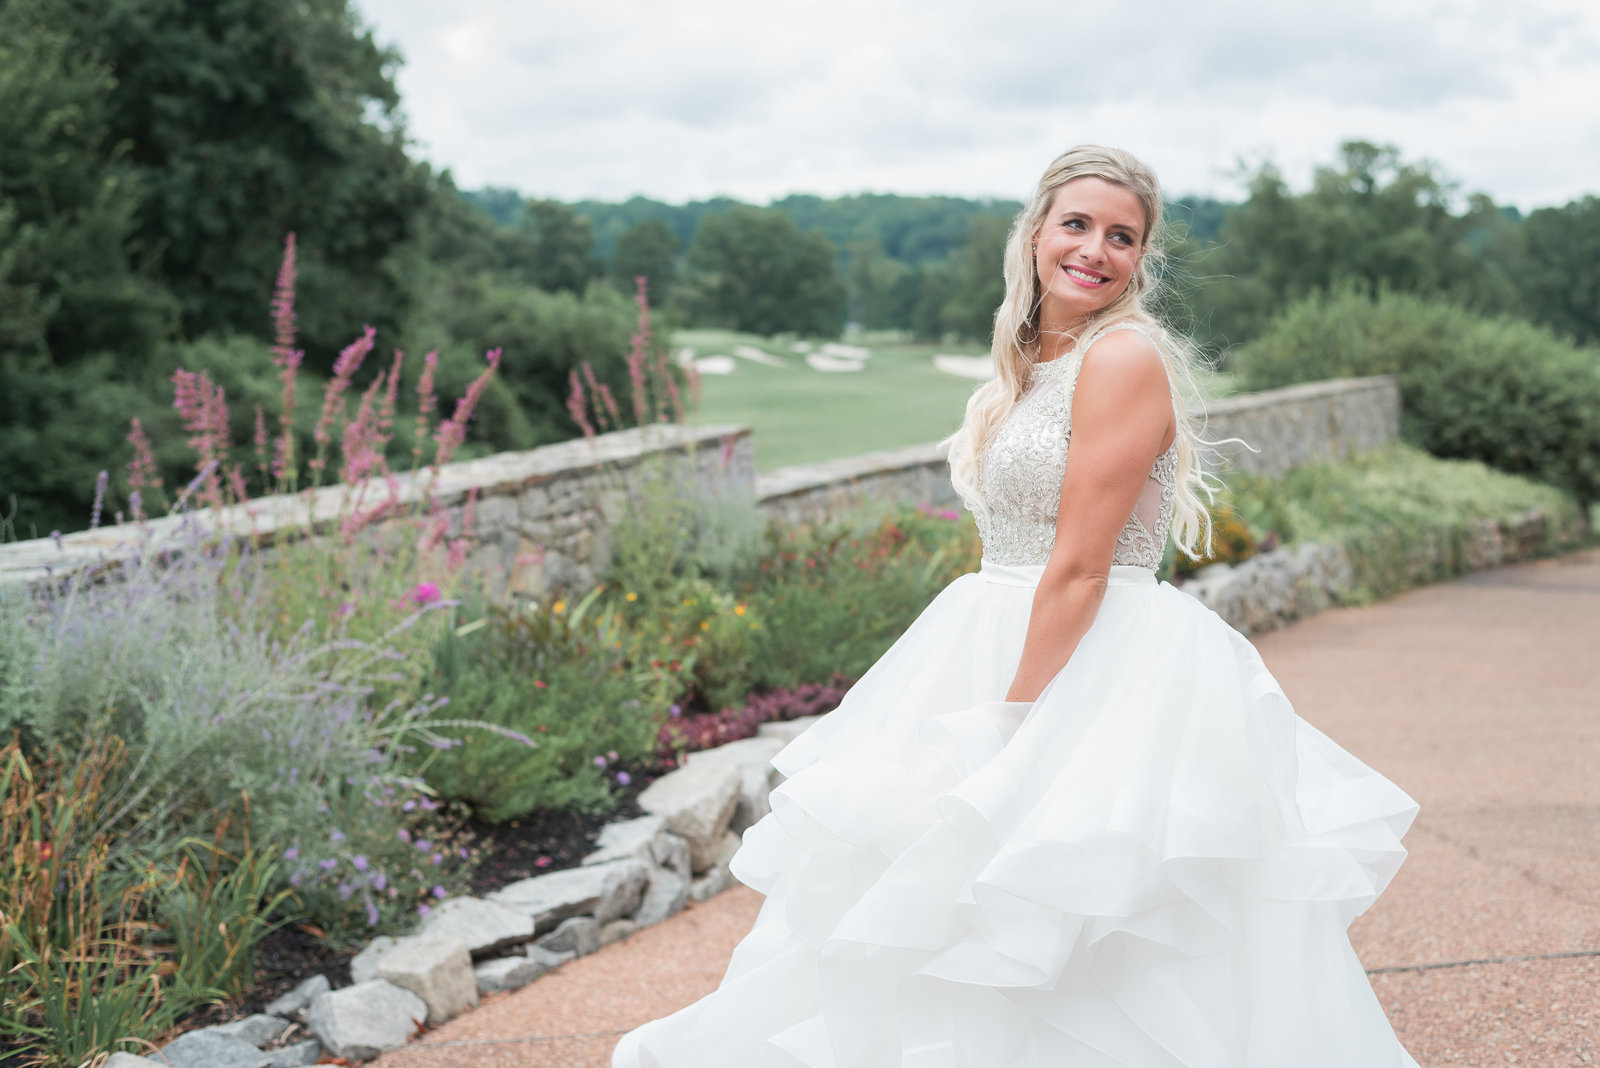 Byra-and-Nick-Willow-Oaks-Country-Club-Wedding-Melissa-Desjardins-Photography-8